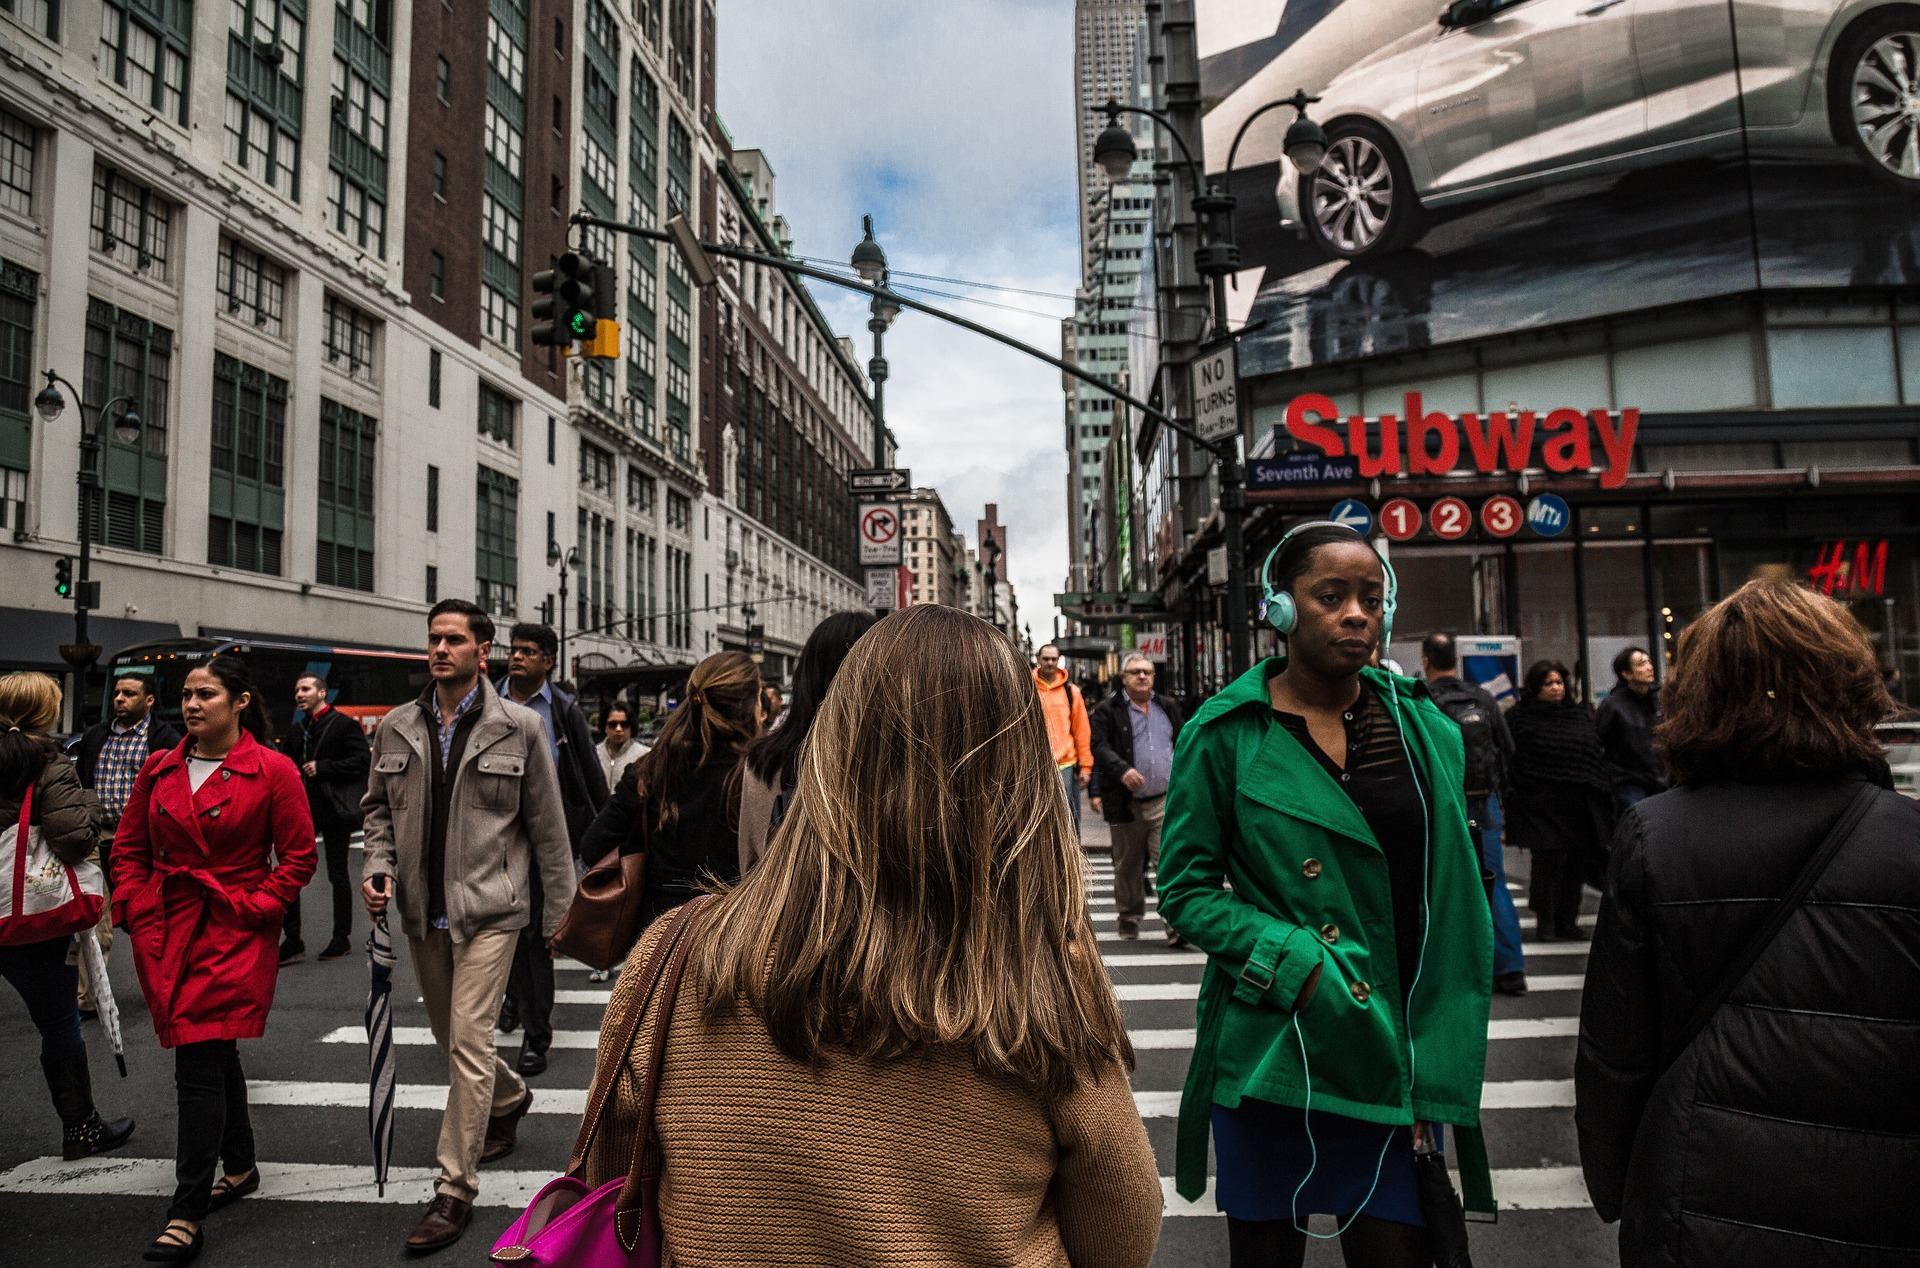 Women cross the street in New York City. Photograph by Christopher Burns ( Unsplash )